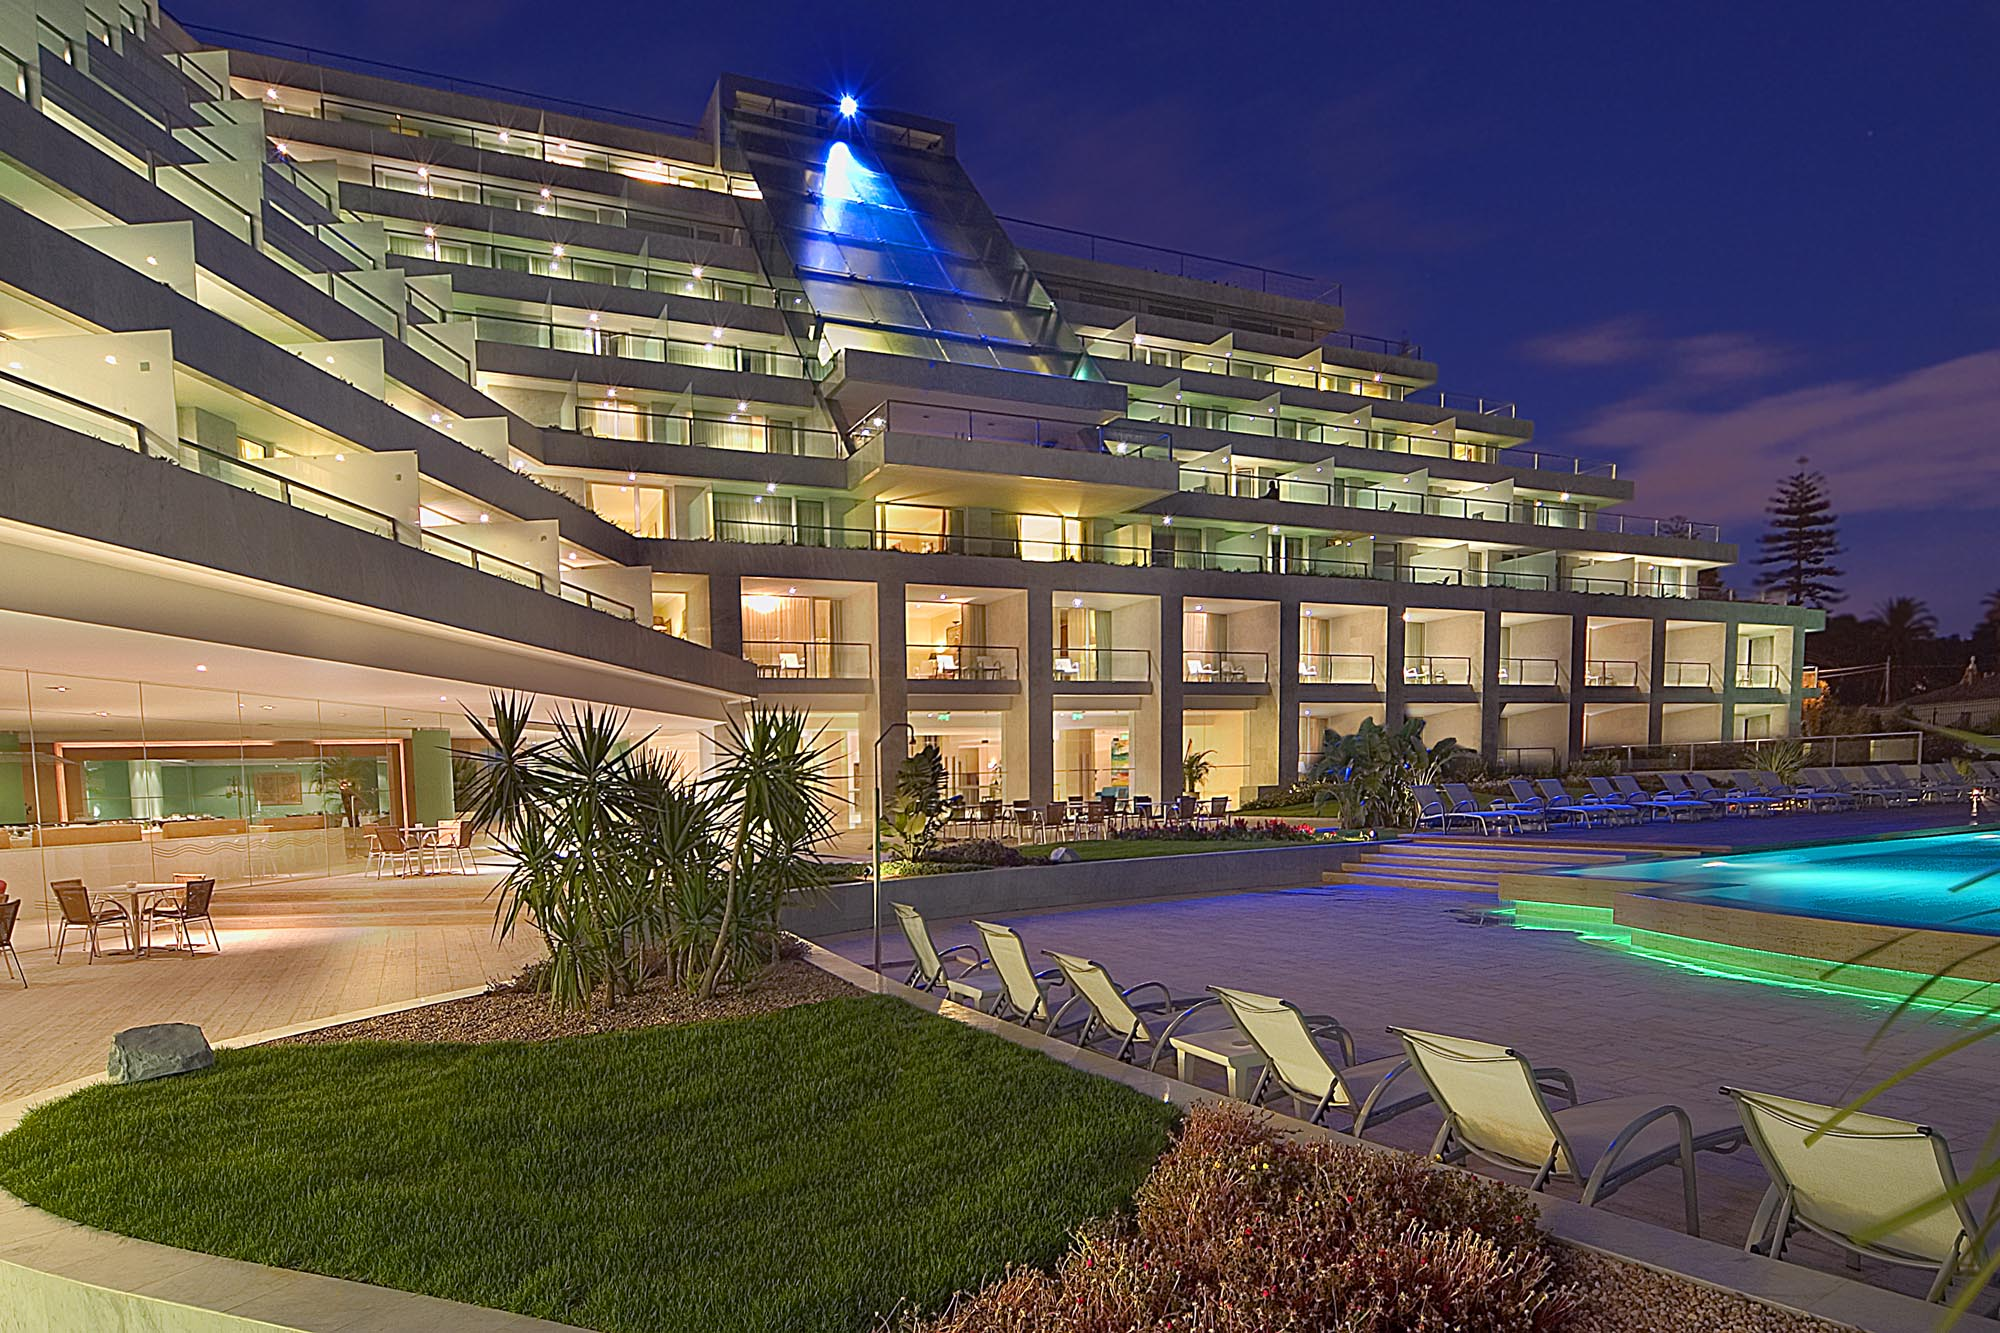 Hotel Cascais Miragem at night